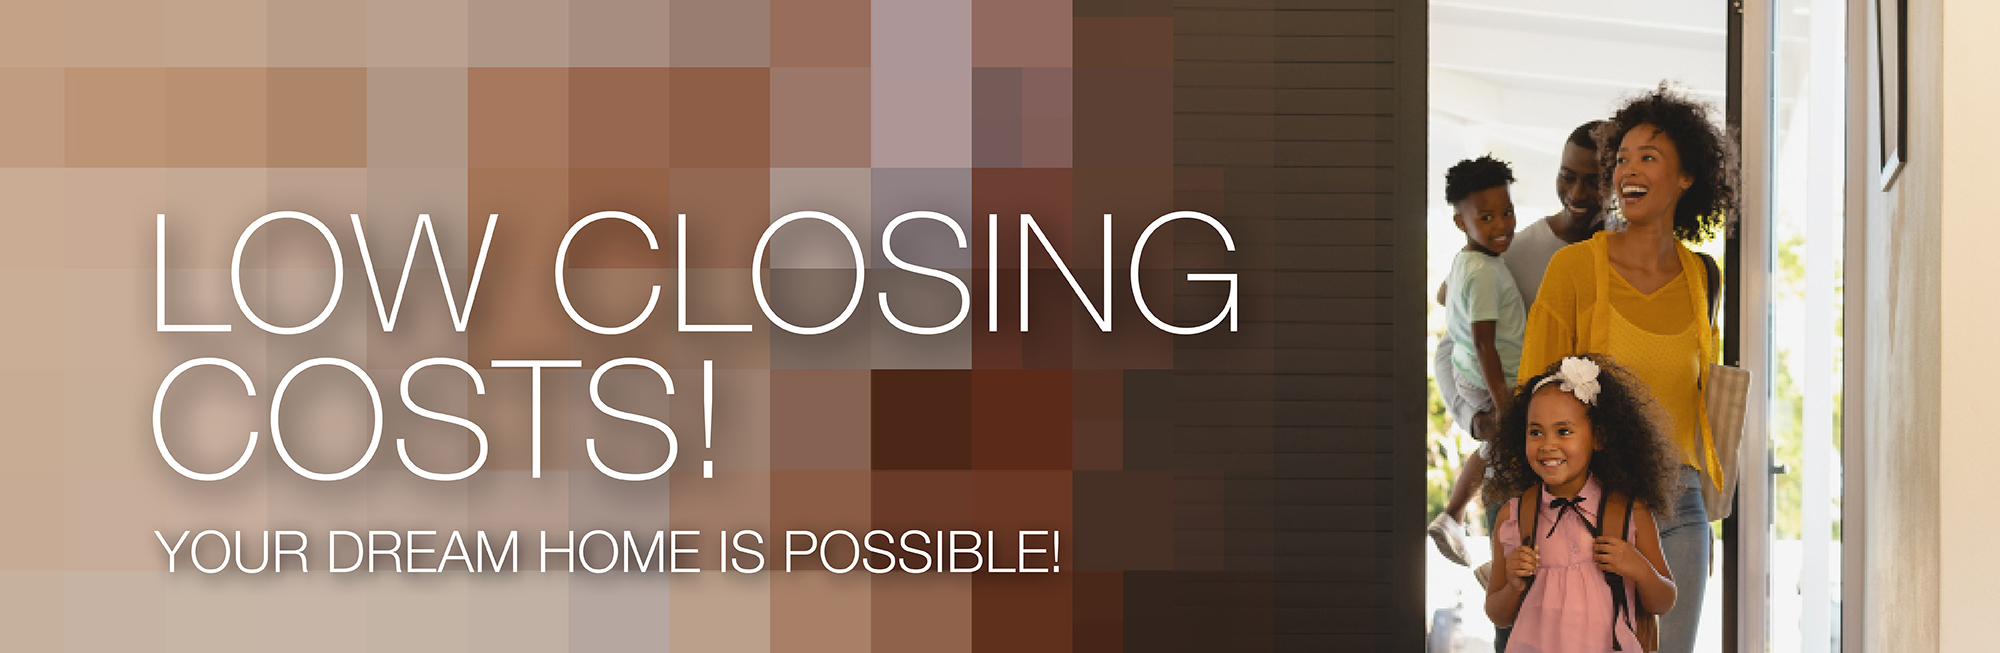 Low Closing Costs! Your Dream Home is Possible!